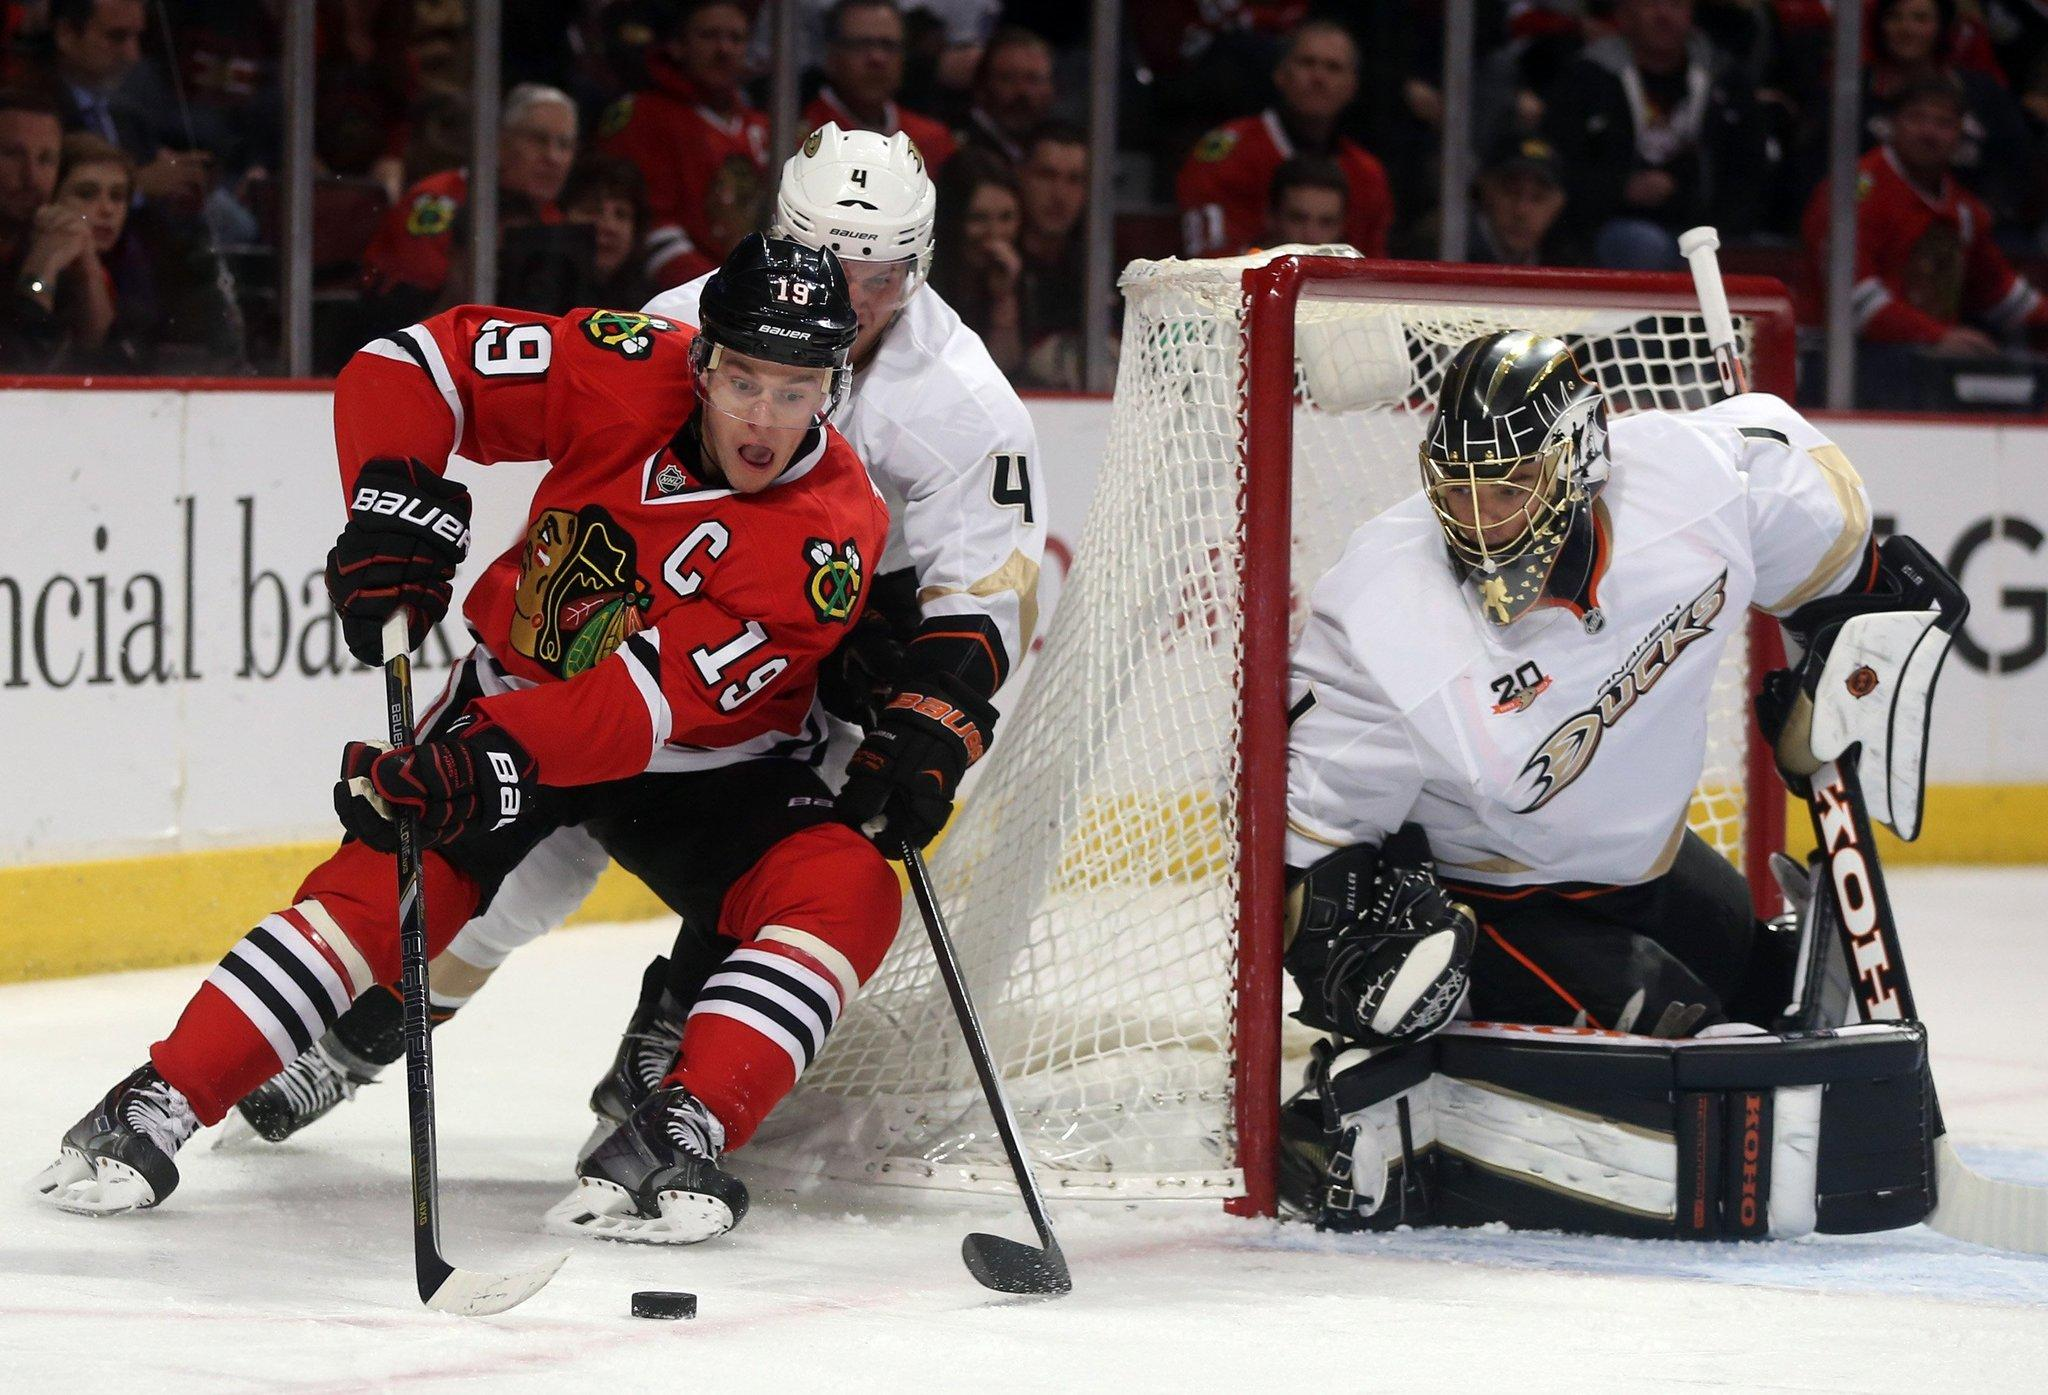 The Anaheim Ducks' Cam Fowler (4) defends against the Chicago Blackhawks' Jonathan Toews (19) as Anaheim Ducks goalie Jonas Hiller (1) holds the post in the first period on Friday, Jan. 17, 2014, at the United Center in Chicago.